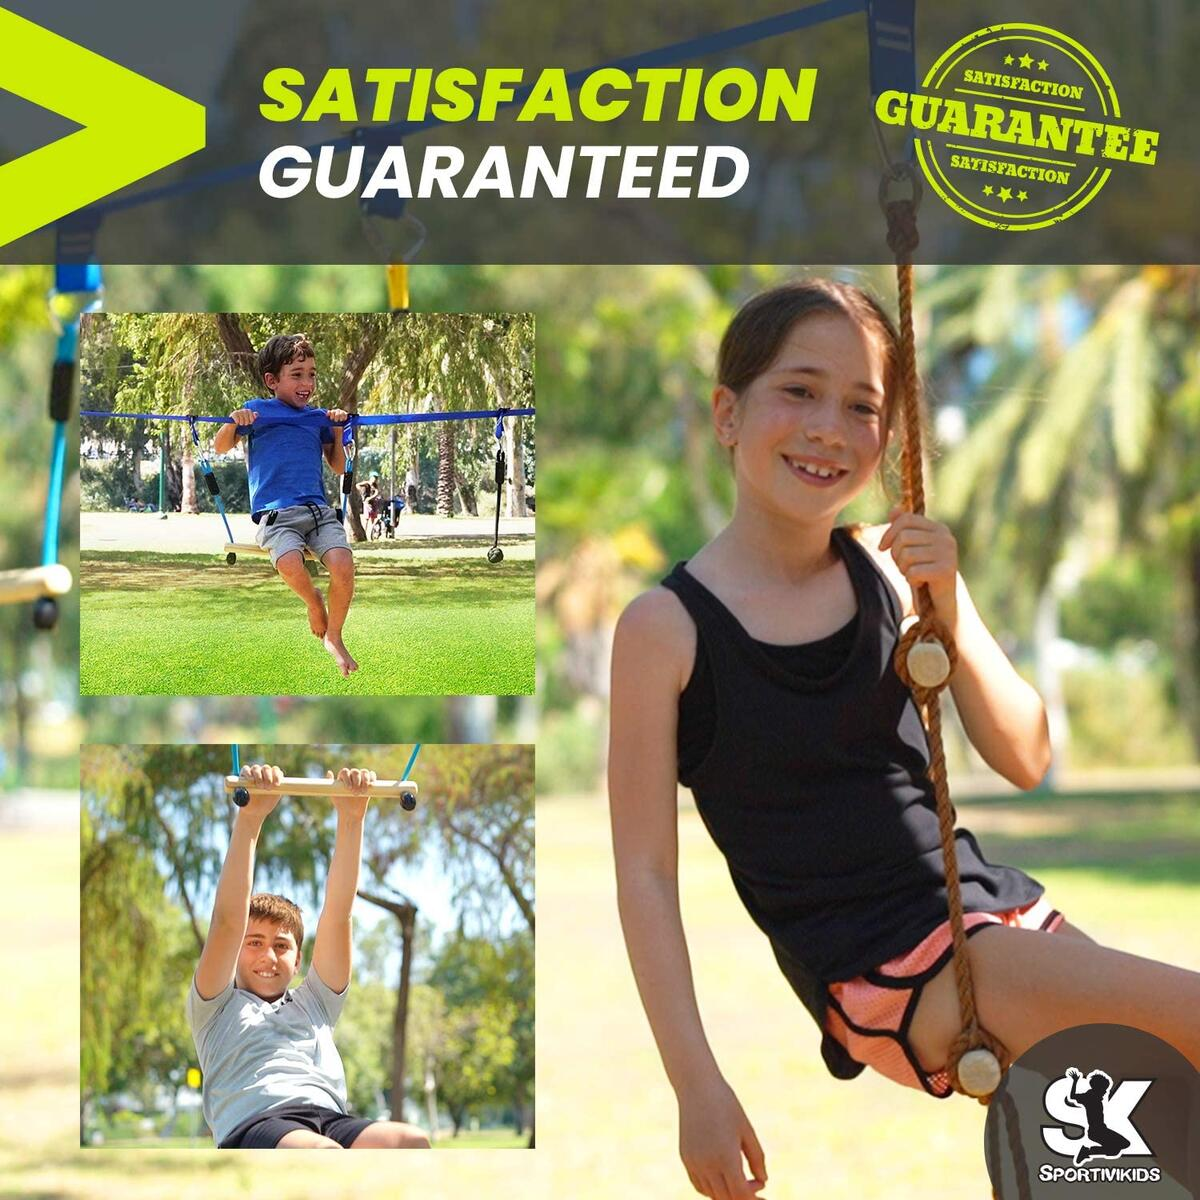 SPORTIVIKIDS Ninja Warrior Obstacle Course for Kids - 50ft Ninja Slackline with Bonus Eva Swing Set, Fun Outdoor Playsets for Backyard, 8 Obstacles with Adjustable Buckles, Capacity 300lbs